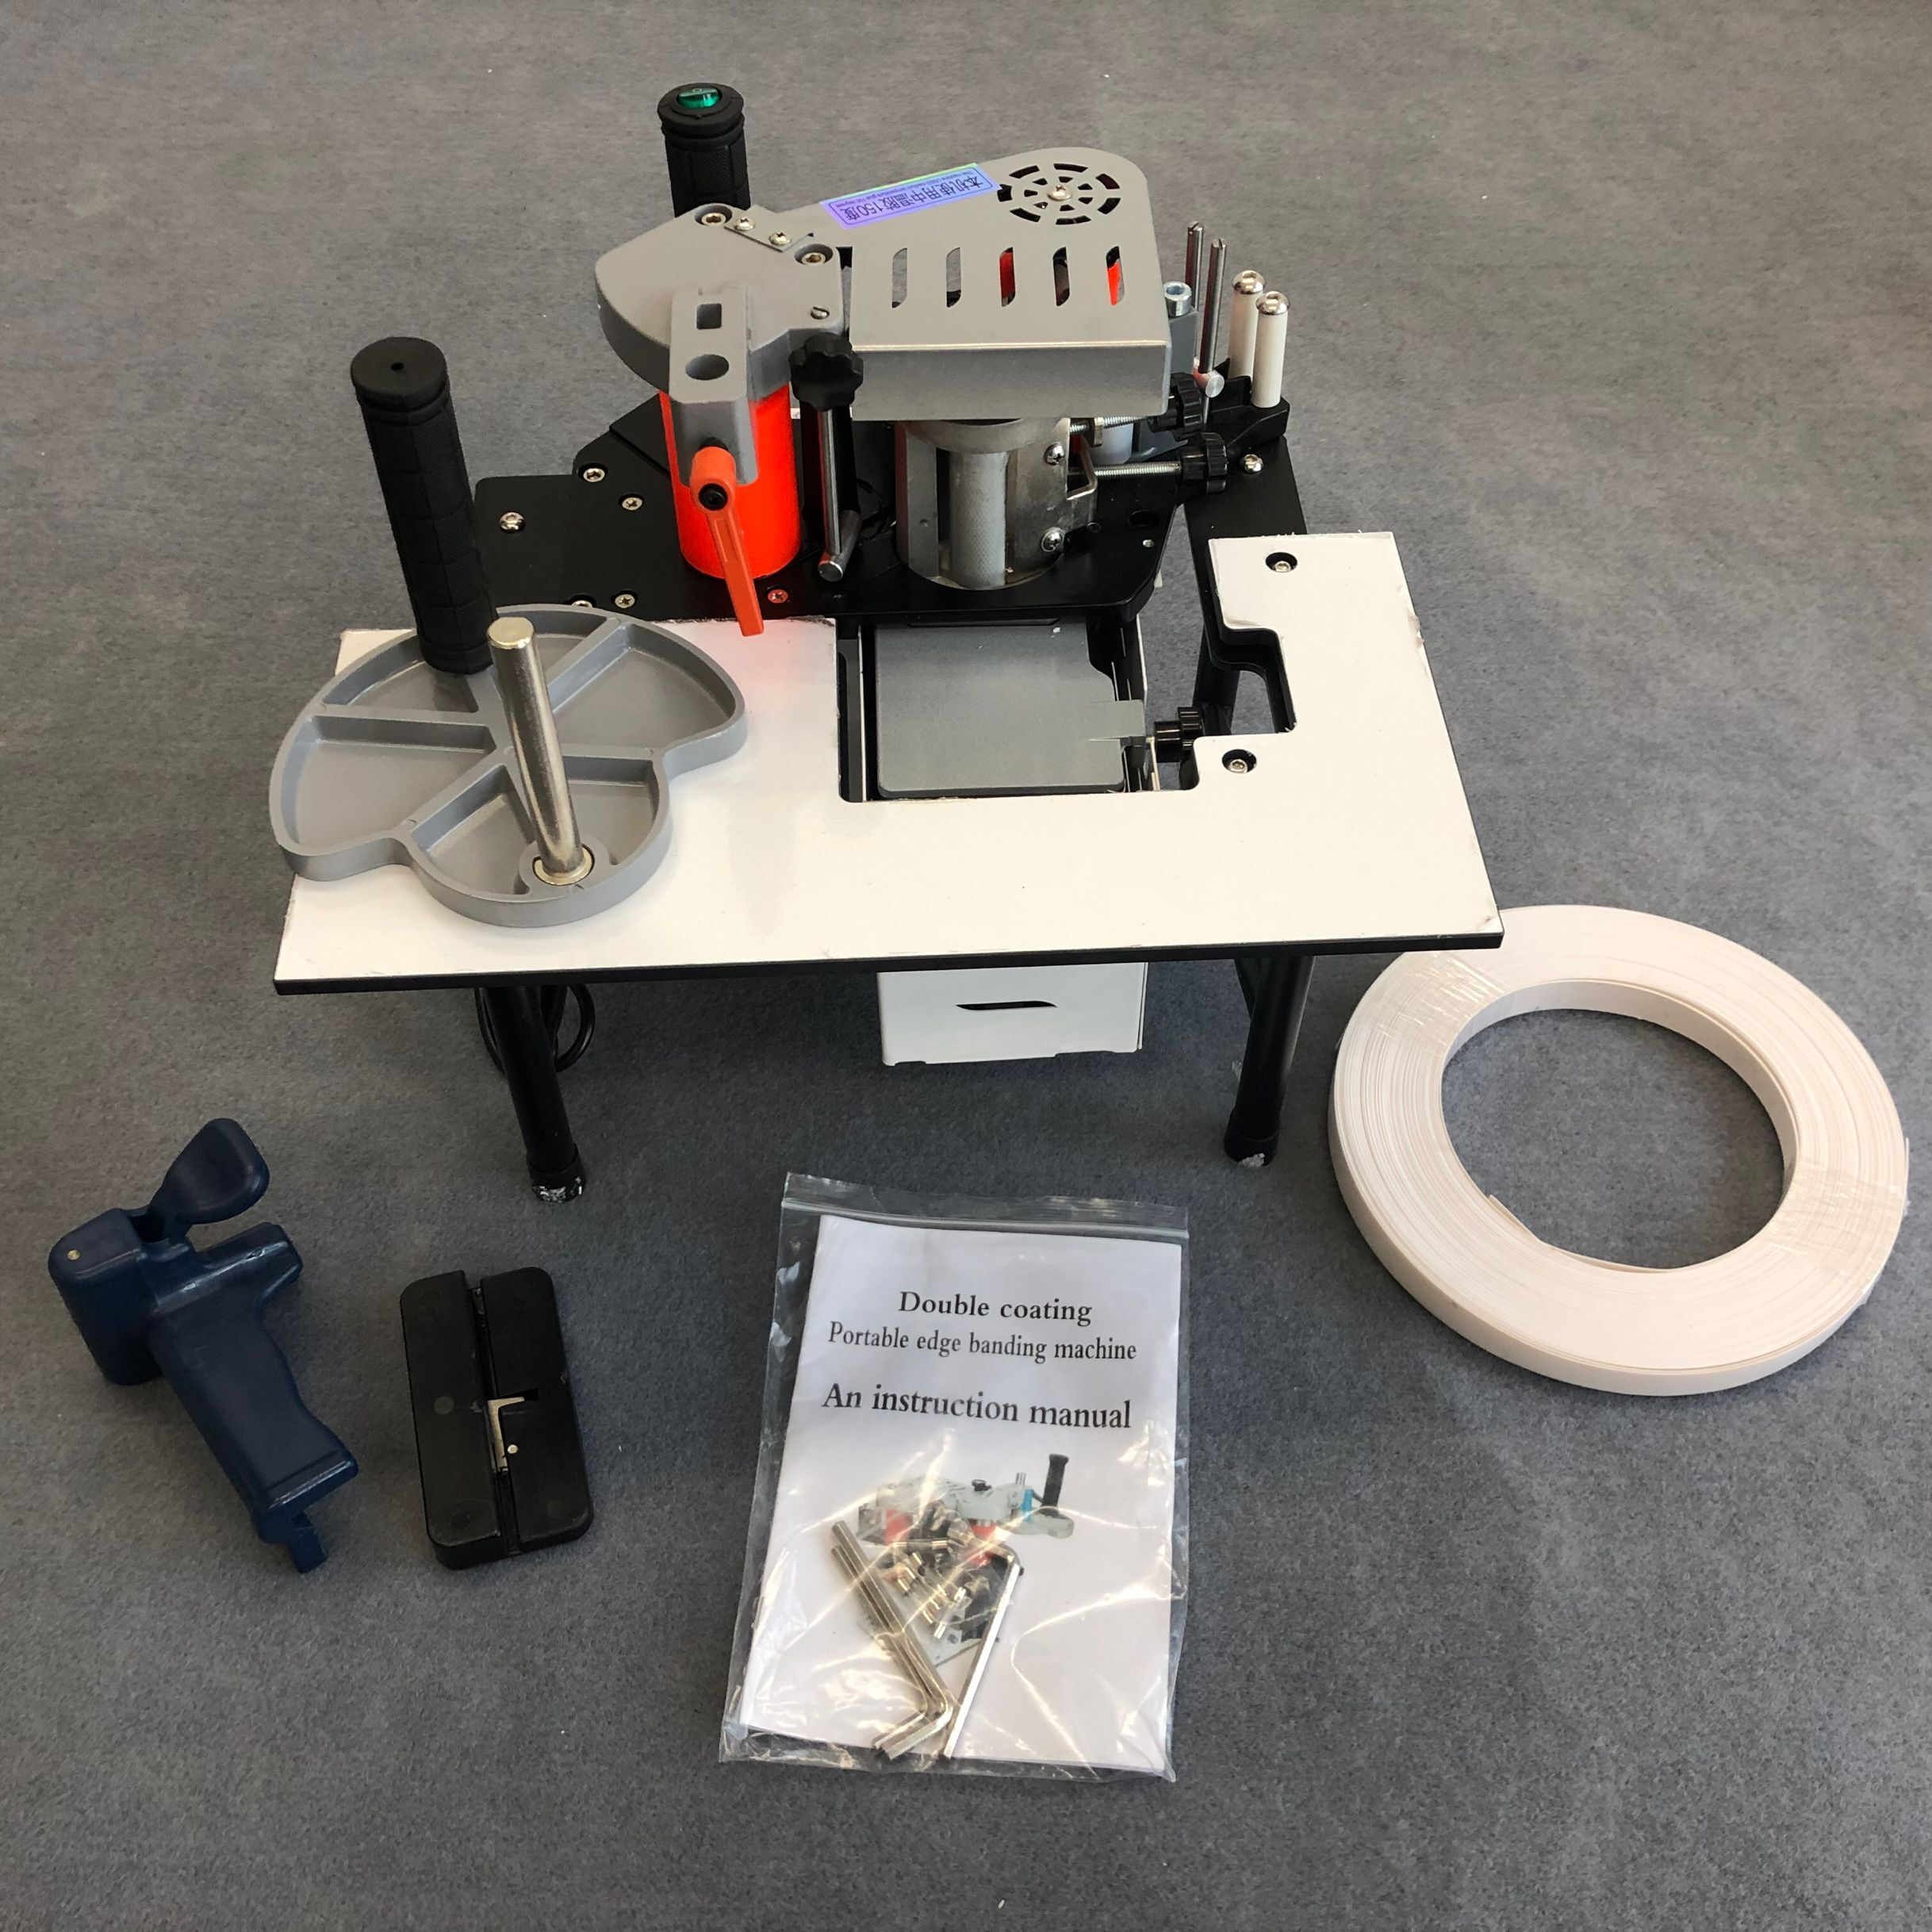 Woodworking Banding Machine Double Side Gluing Portable Edge Bander Woodworking Edge Banding Machine 220V 1200W